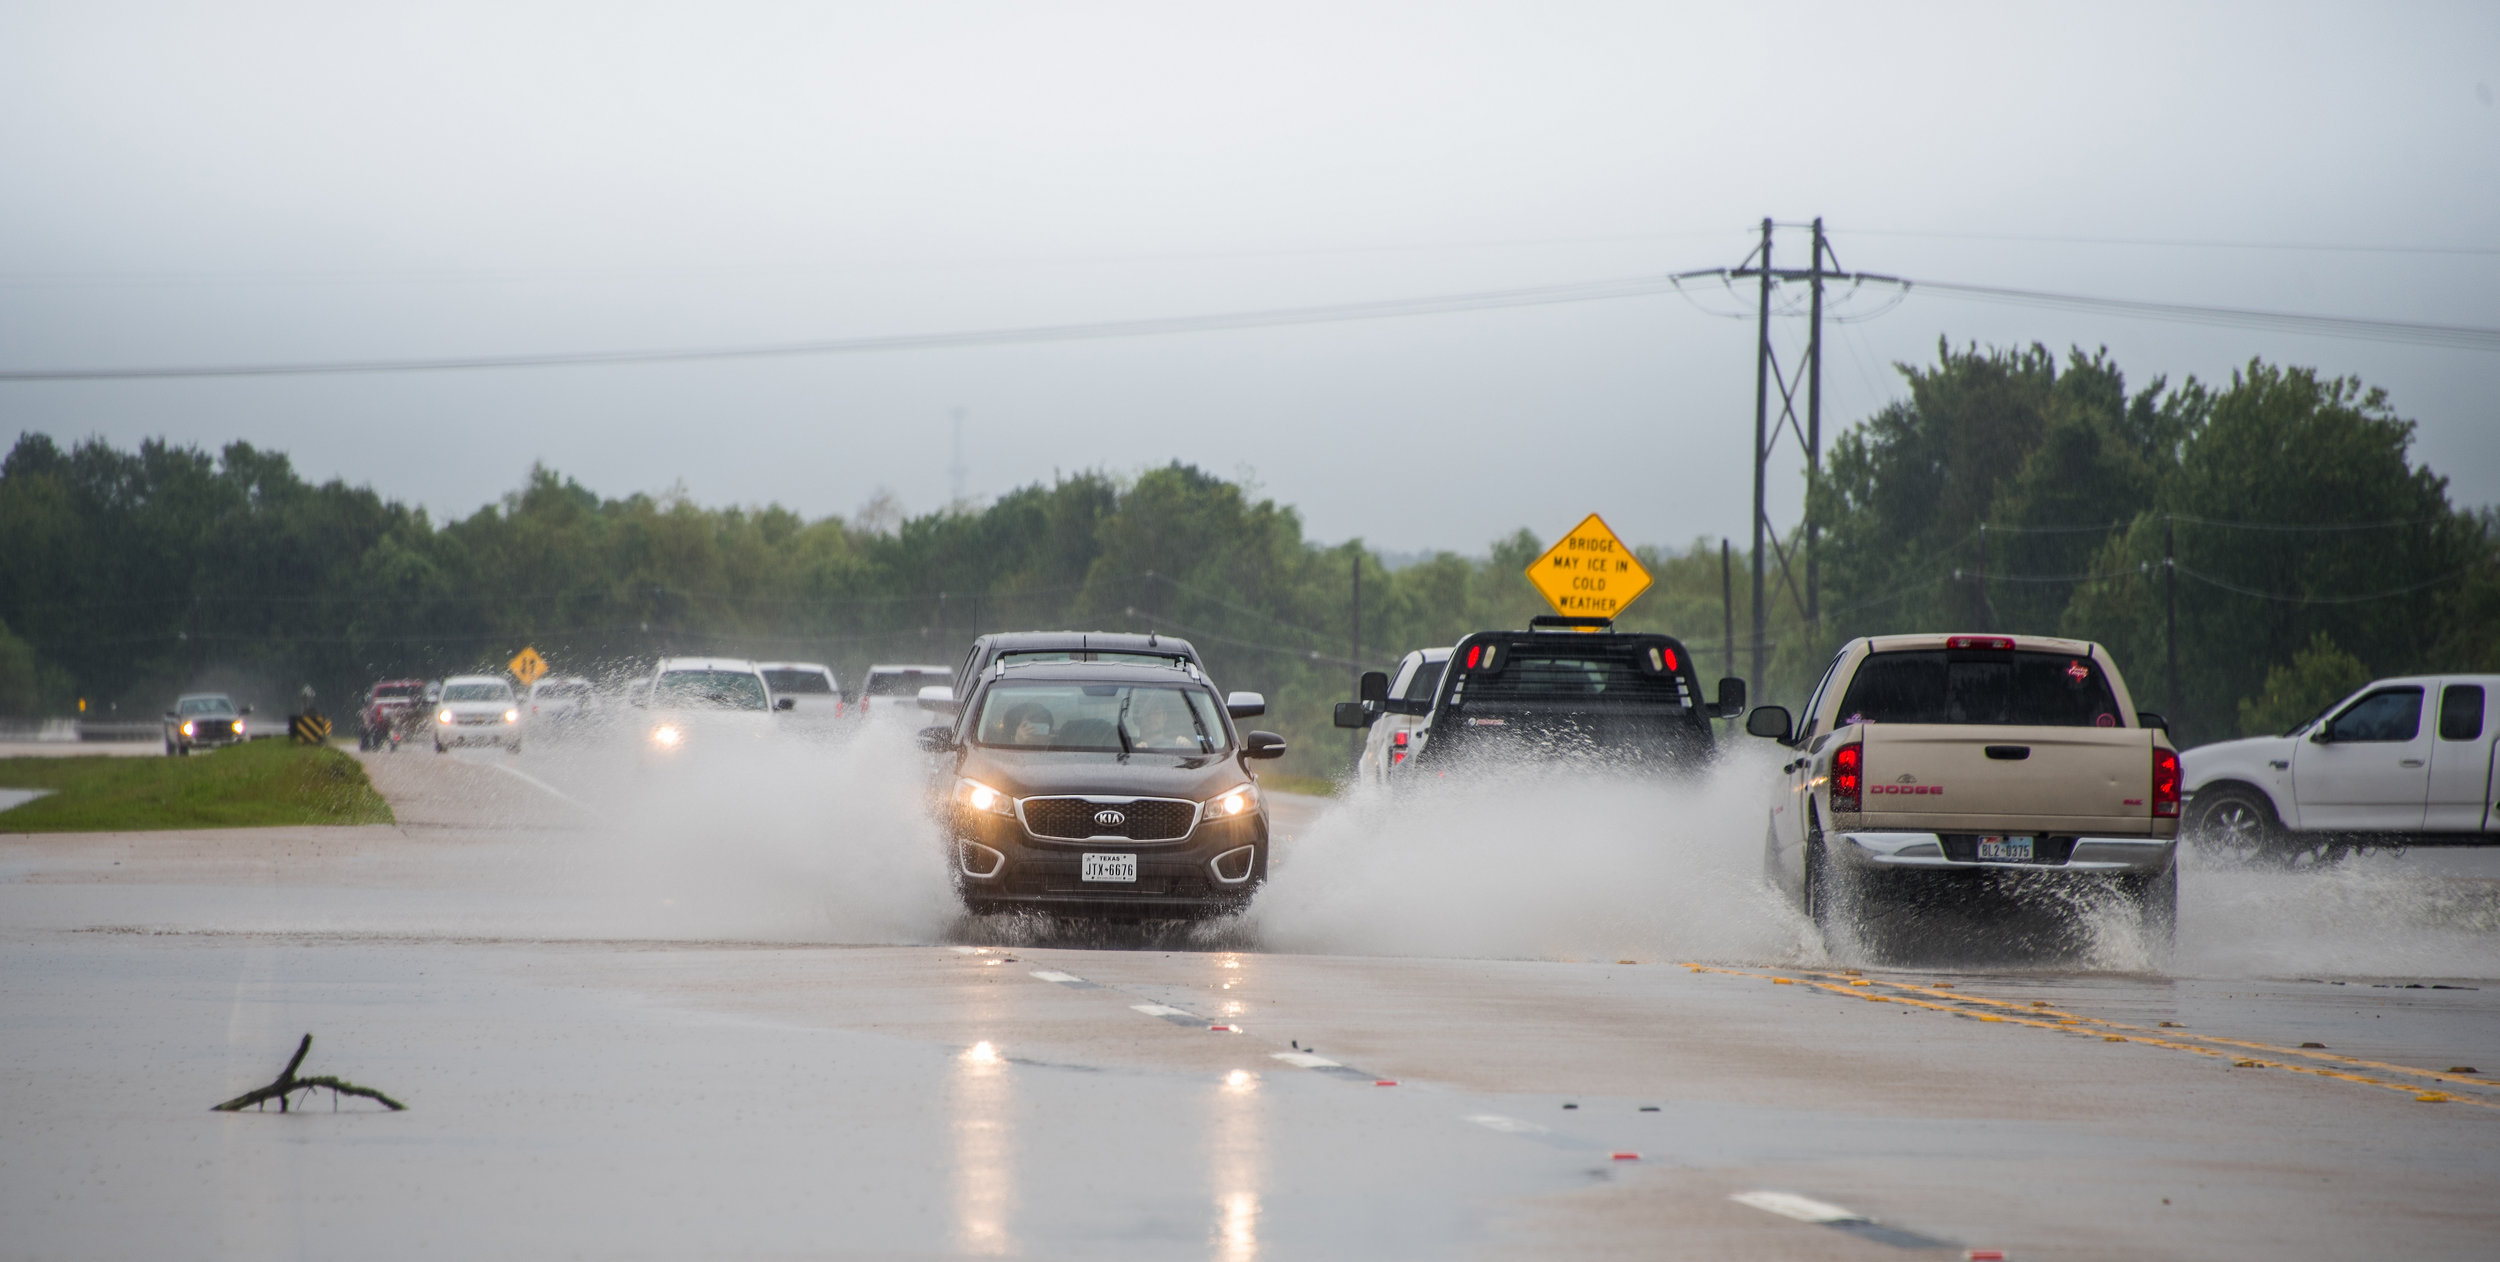 State Highway 242, close to The Woodlands, starts to flood while vehicles try to pass during Hurricane Harvey in Conroe, TX, United States on August 29, 2017